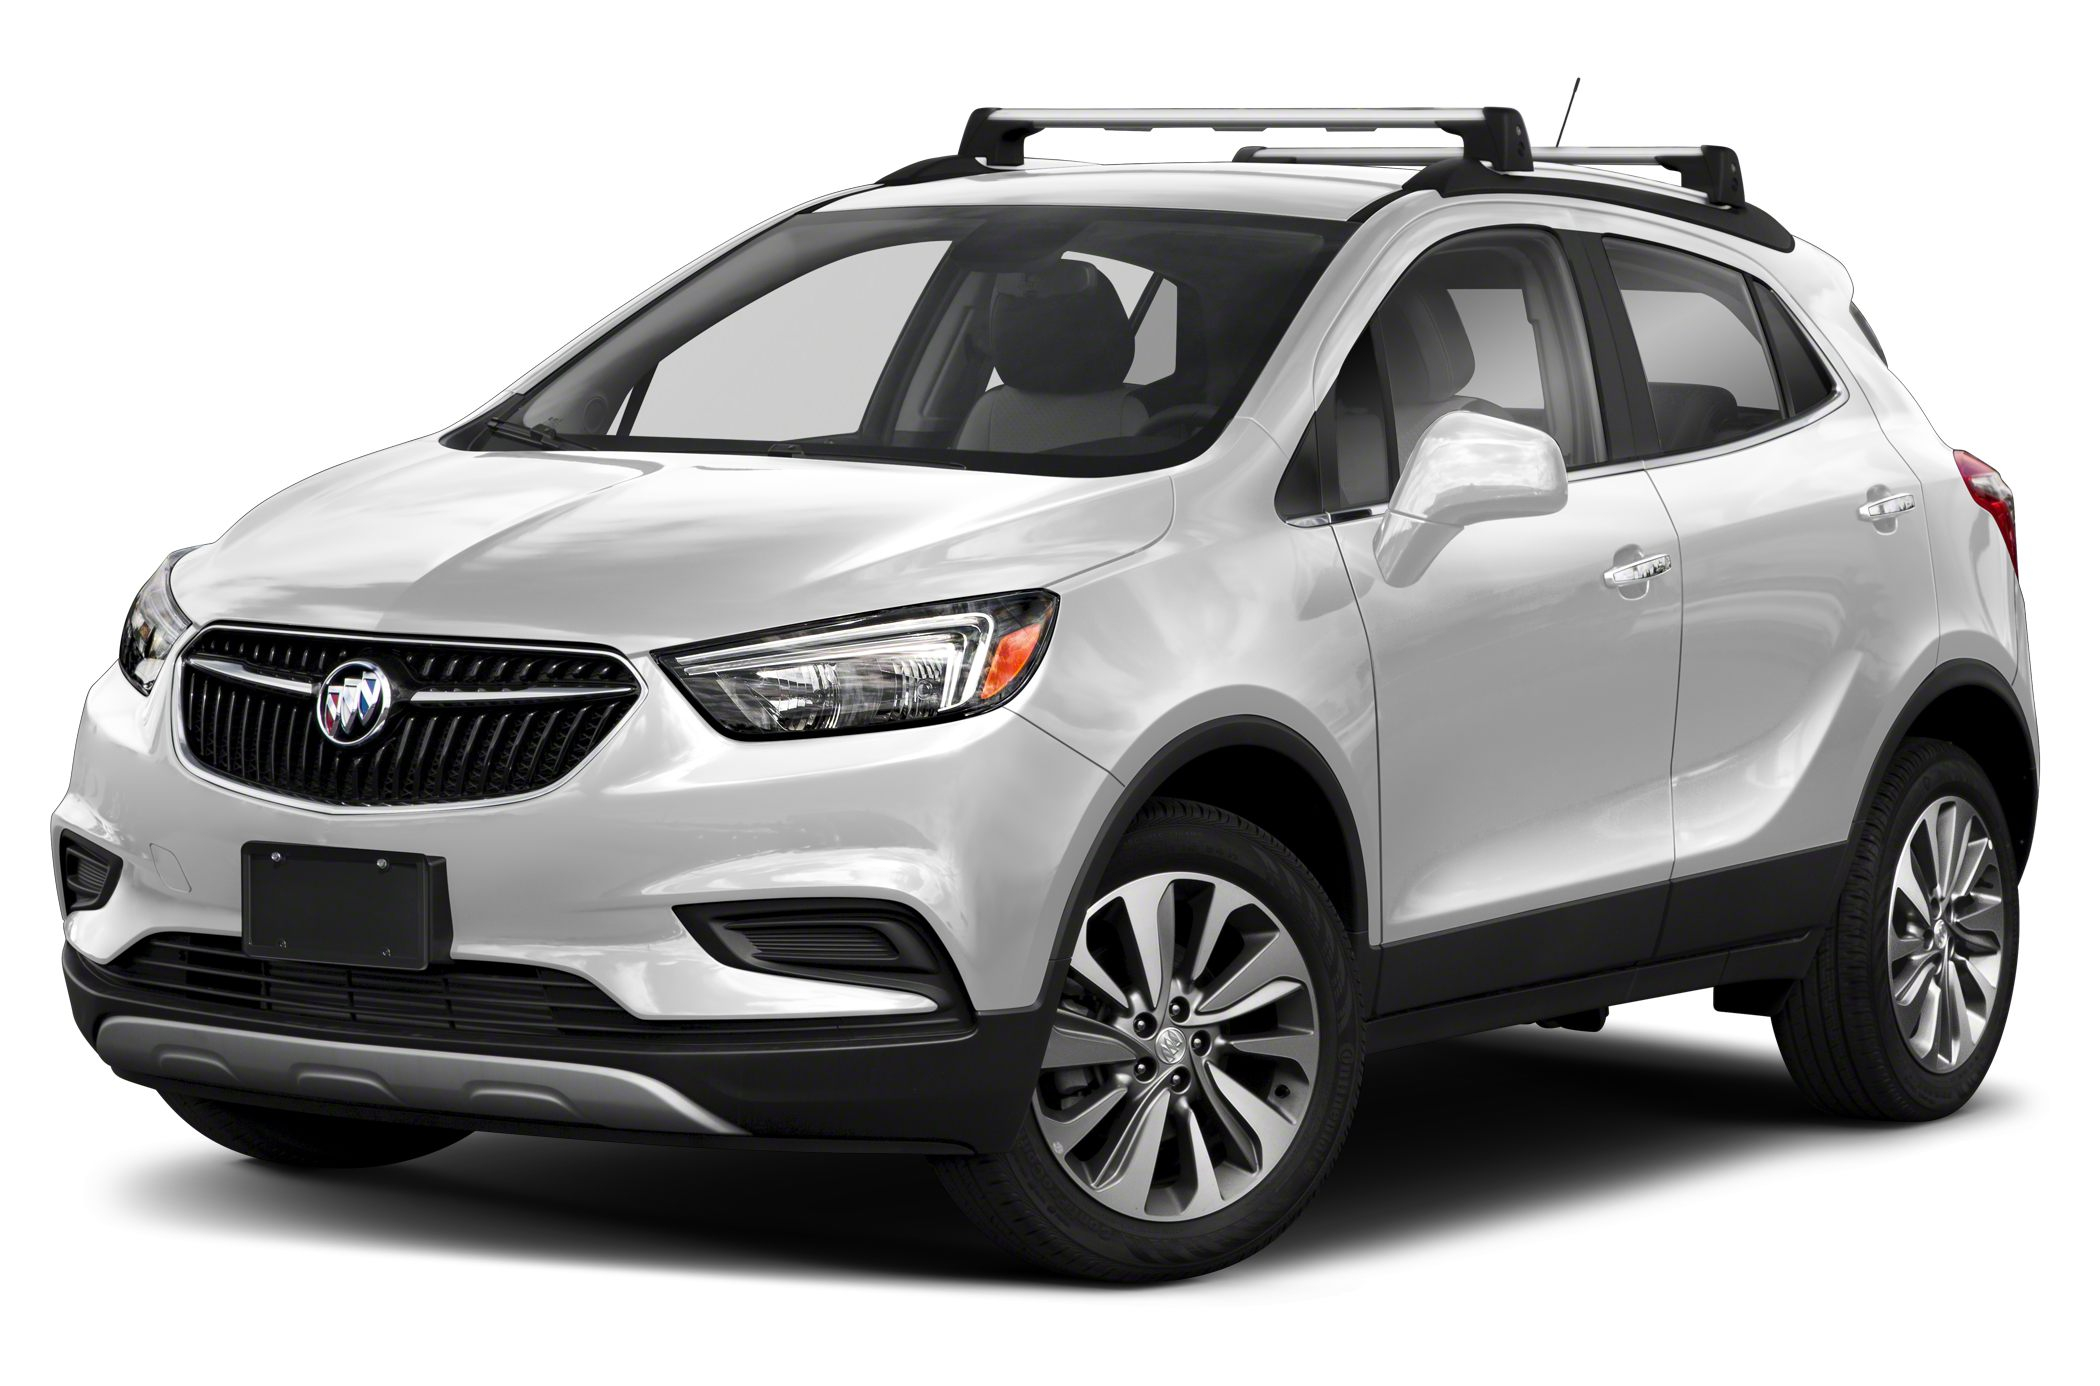 2021 Buick Encore Videos 2021 Buick Encore Essence Reviews, Specs, Configurations